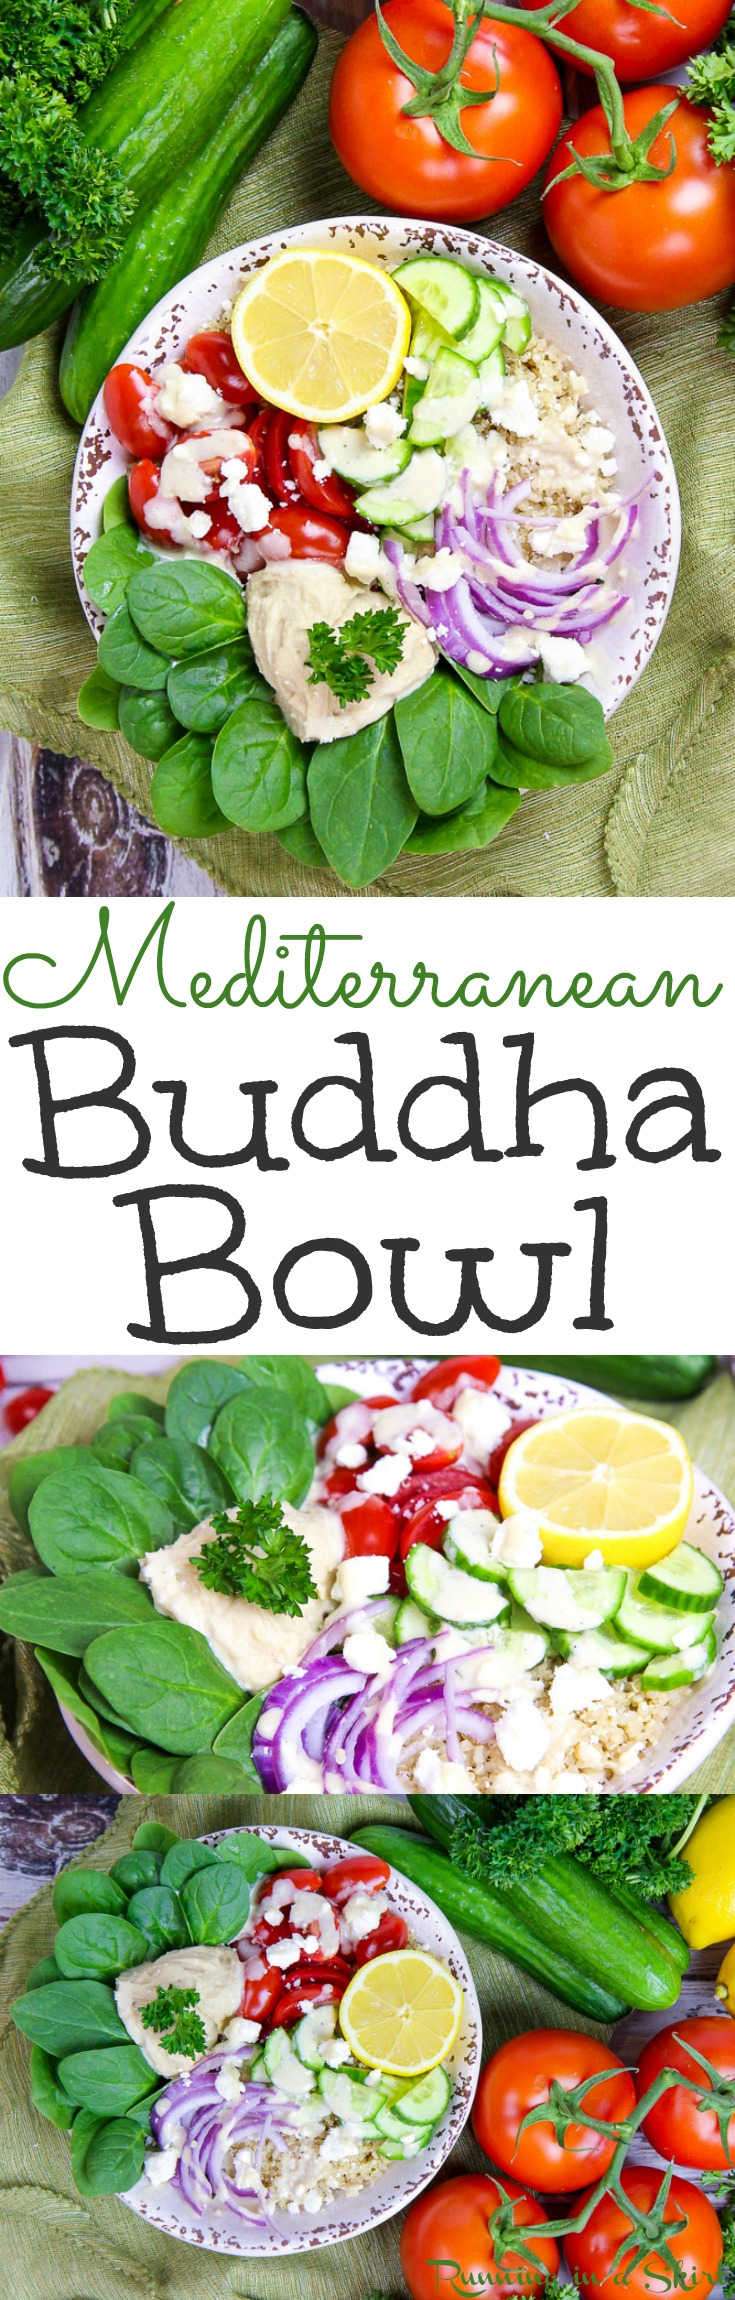 Healthy Mediterranean Buddha Bowl recipe with Lemon Tahini Dressing.  Looking for easy plant based healthy recipes for dinner or lunch? Try this power bowl with simple ingredients like quinoa, spinach, hummus and the perfect sauce. Vegetarian, vegan option, gluten free and low carb! / Running in a Skirt